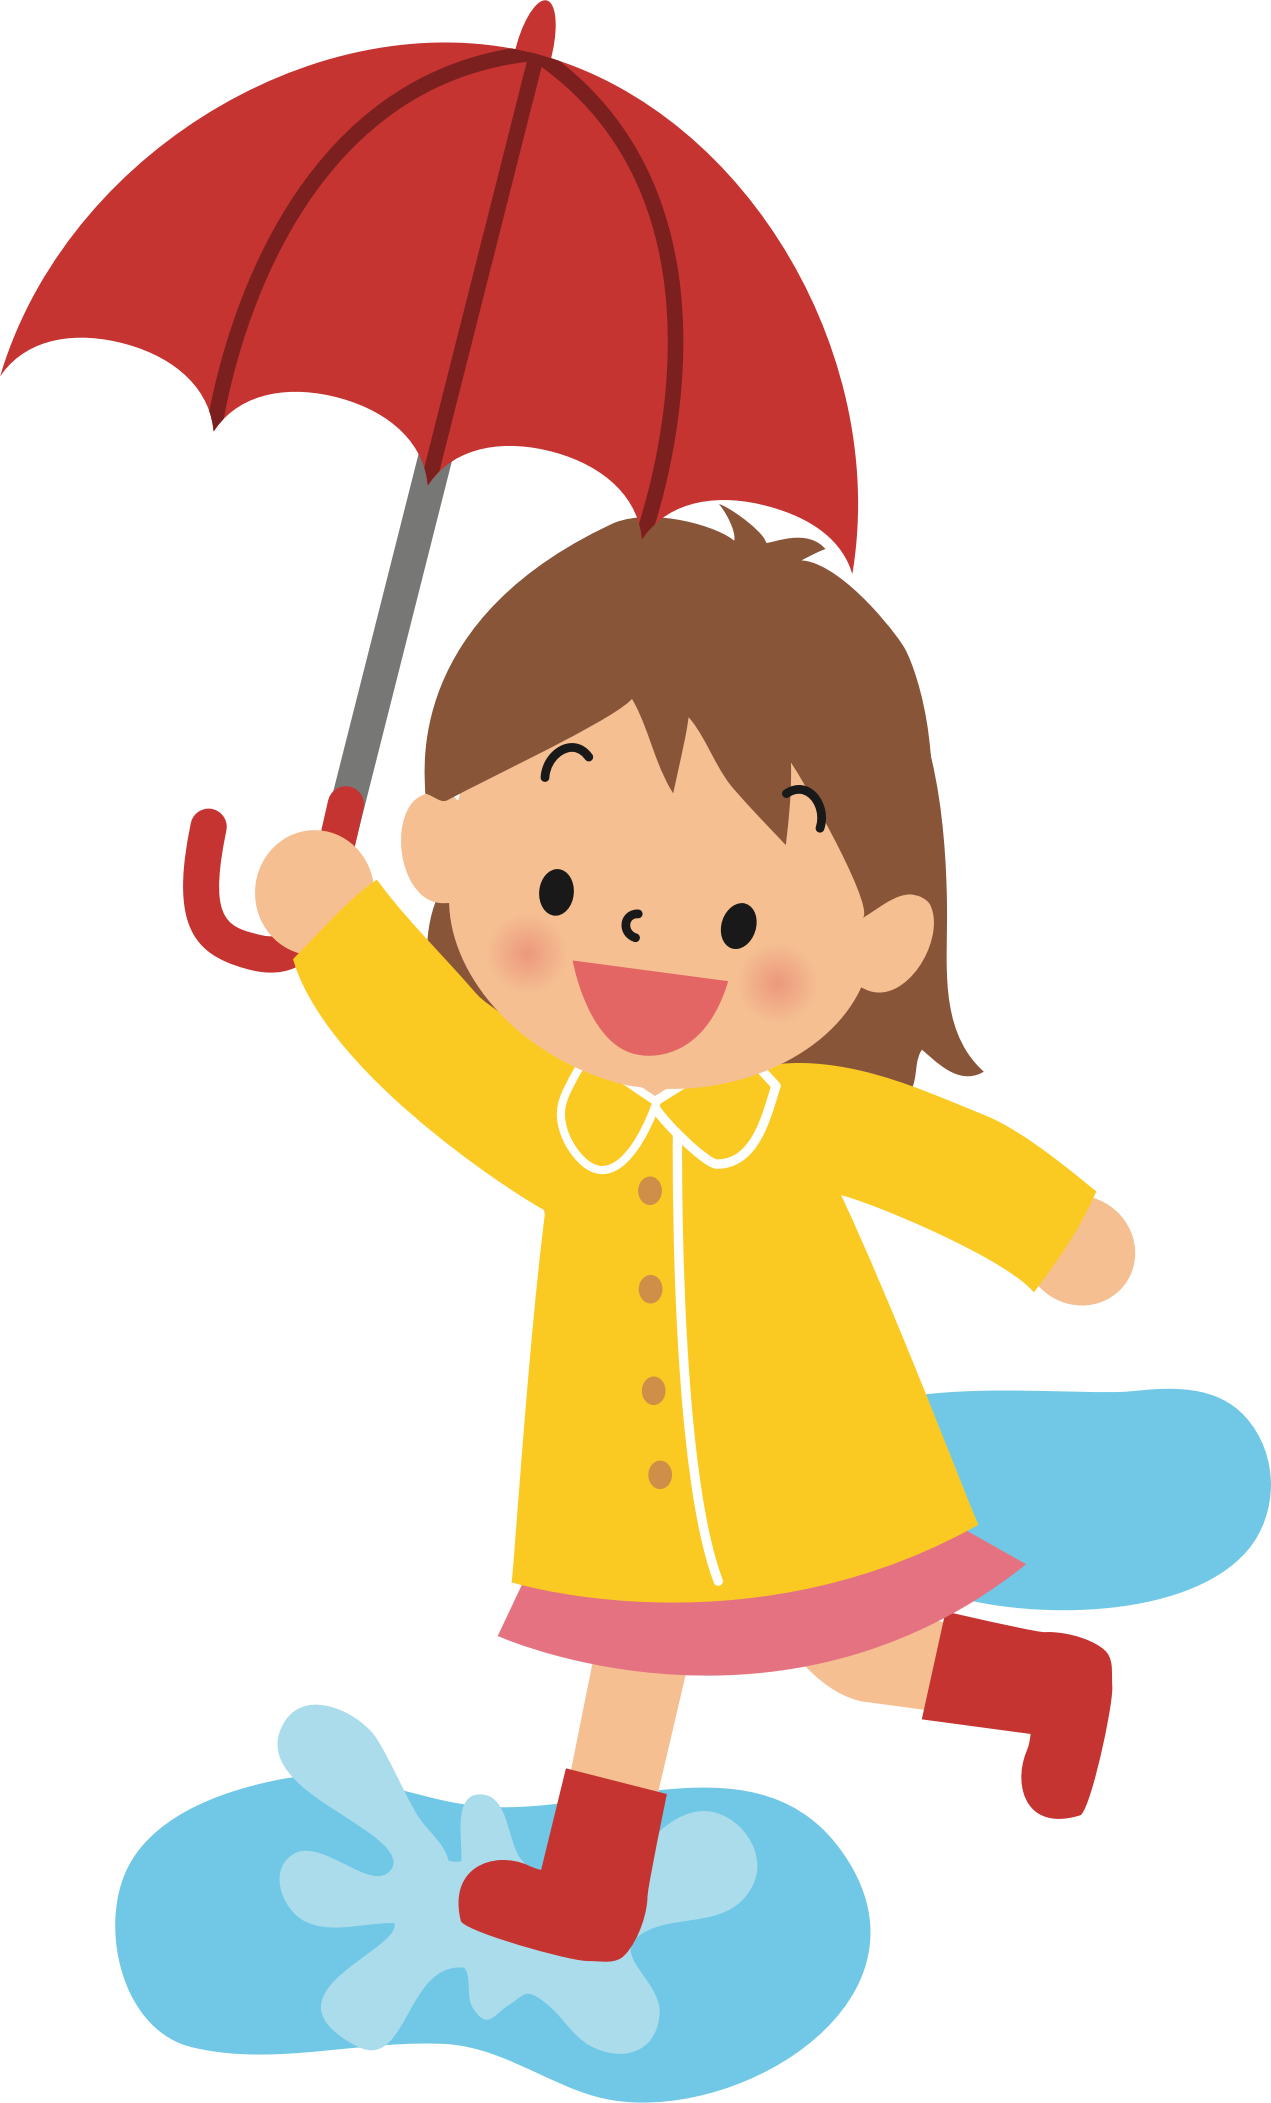 png transparent library Girl walking clipart. With umbrella silhouette at